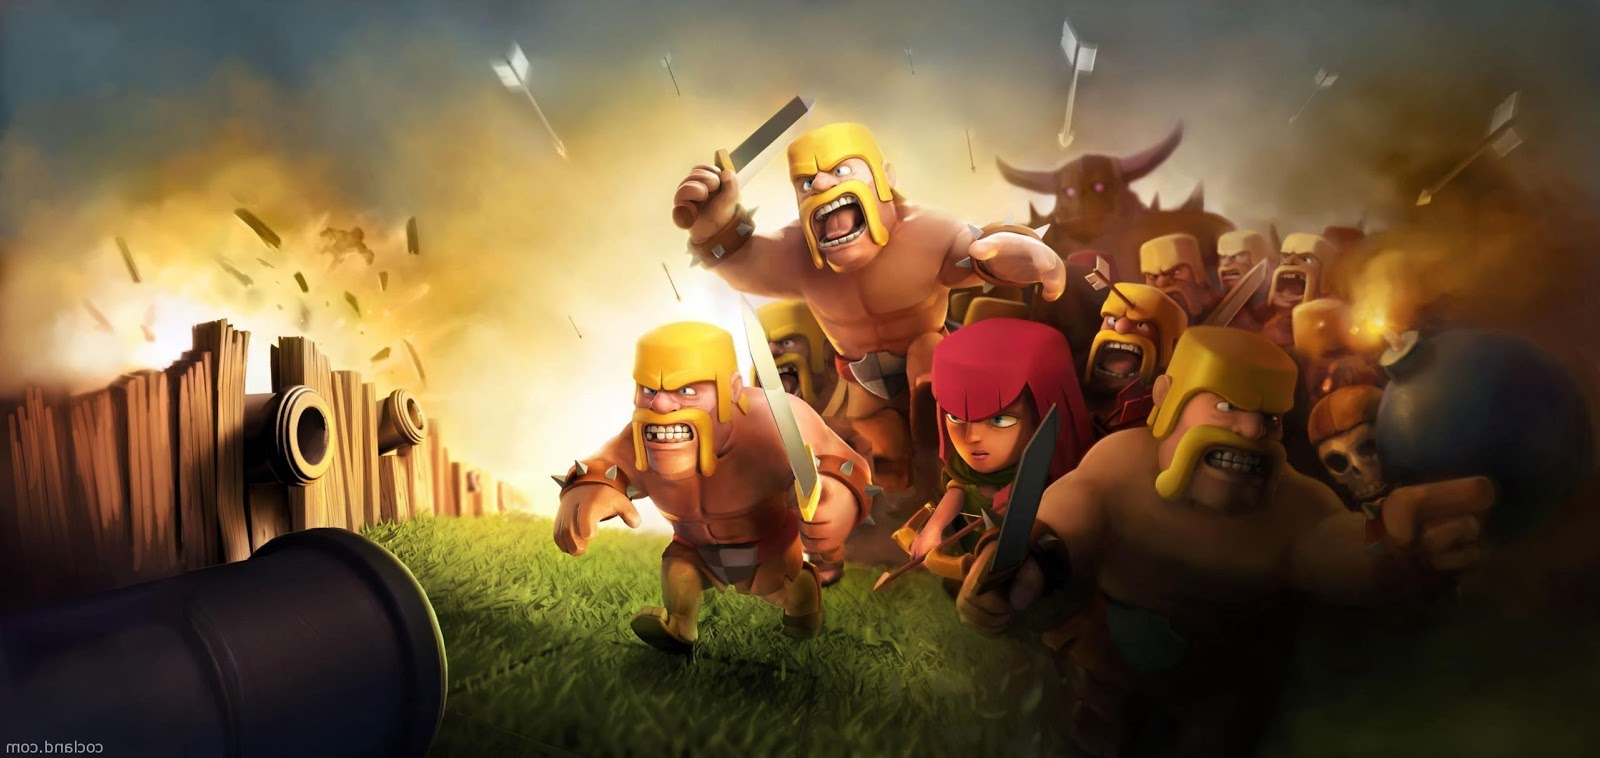 Clash Of Clans Wallpaper For Android Free Download Staterenew